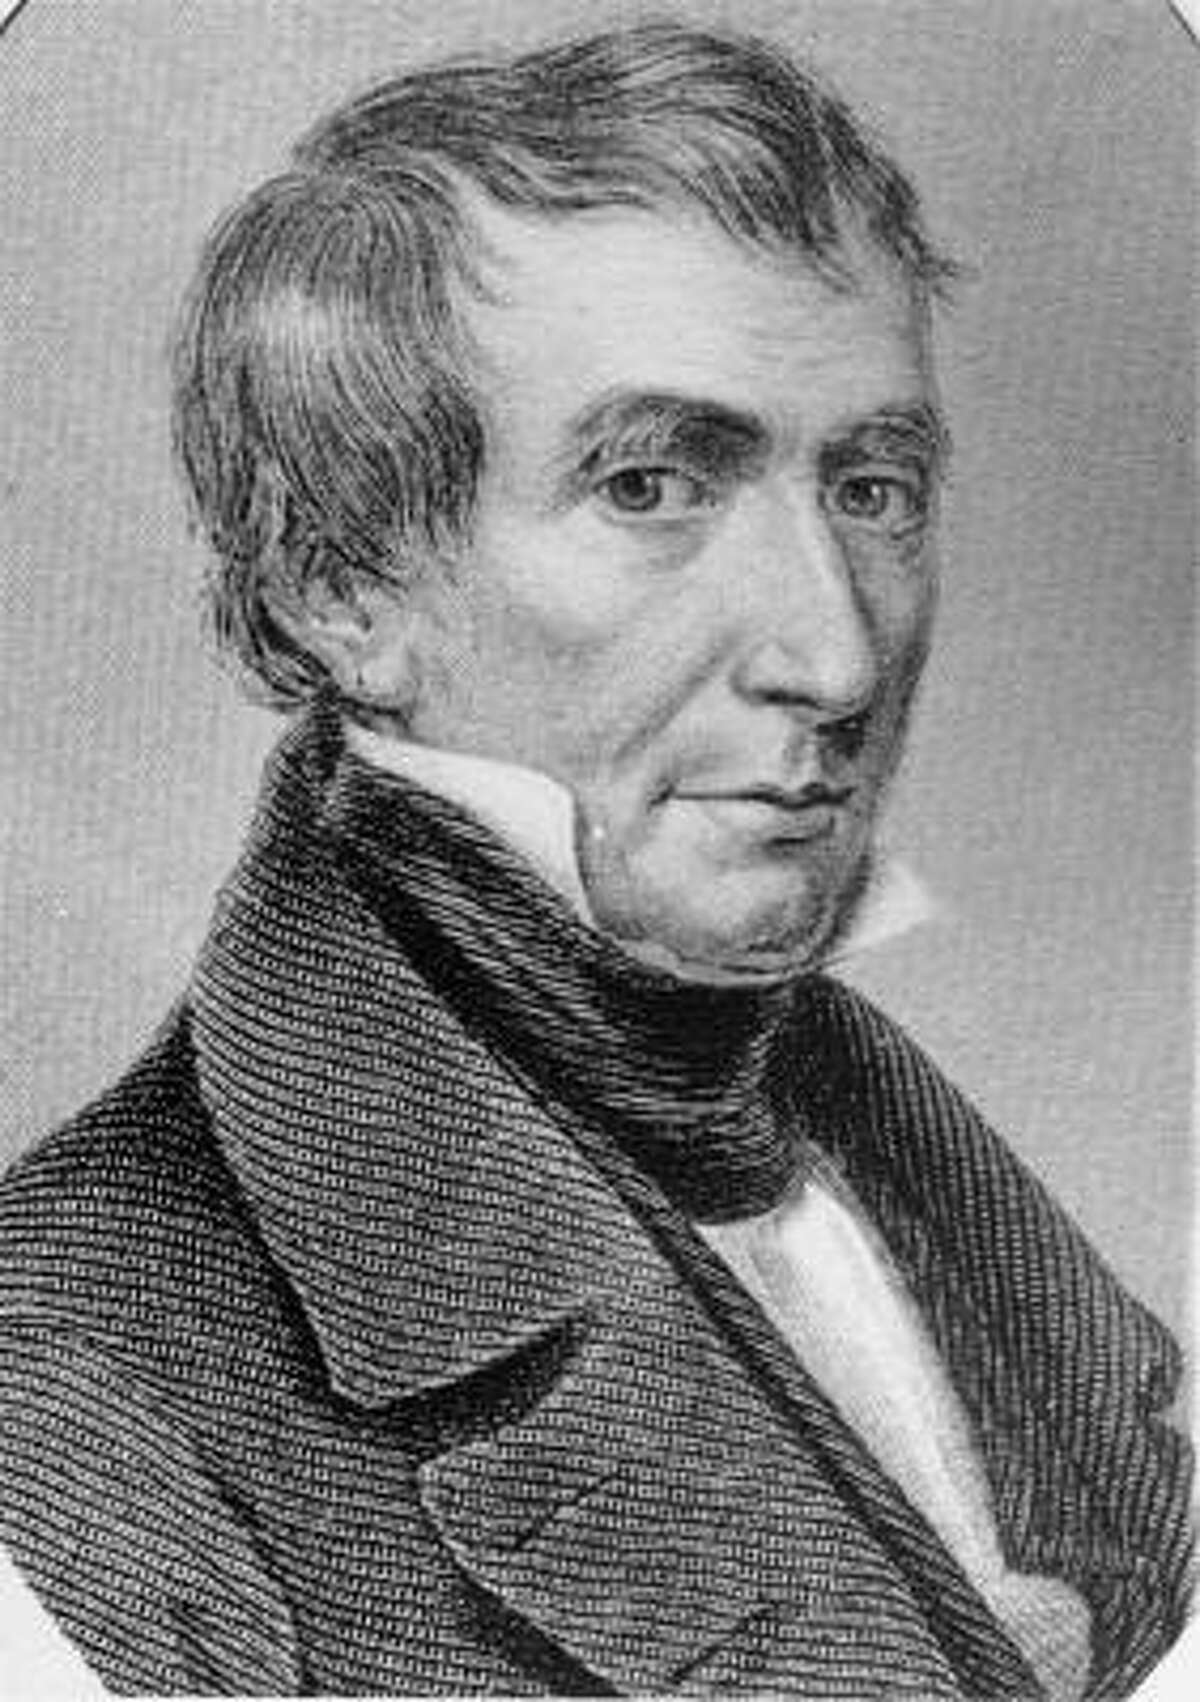 Harrison Your mother was right: Bundle up. In 1841, William Henry Harrison refused to wear a coat and hat in the freezing weather, and then proceeded to read an address that lasted nearly two hours. He caught a cold that turned into pneumonia and died a month later.